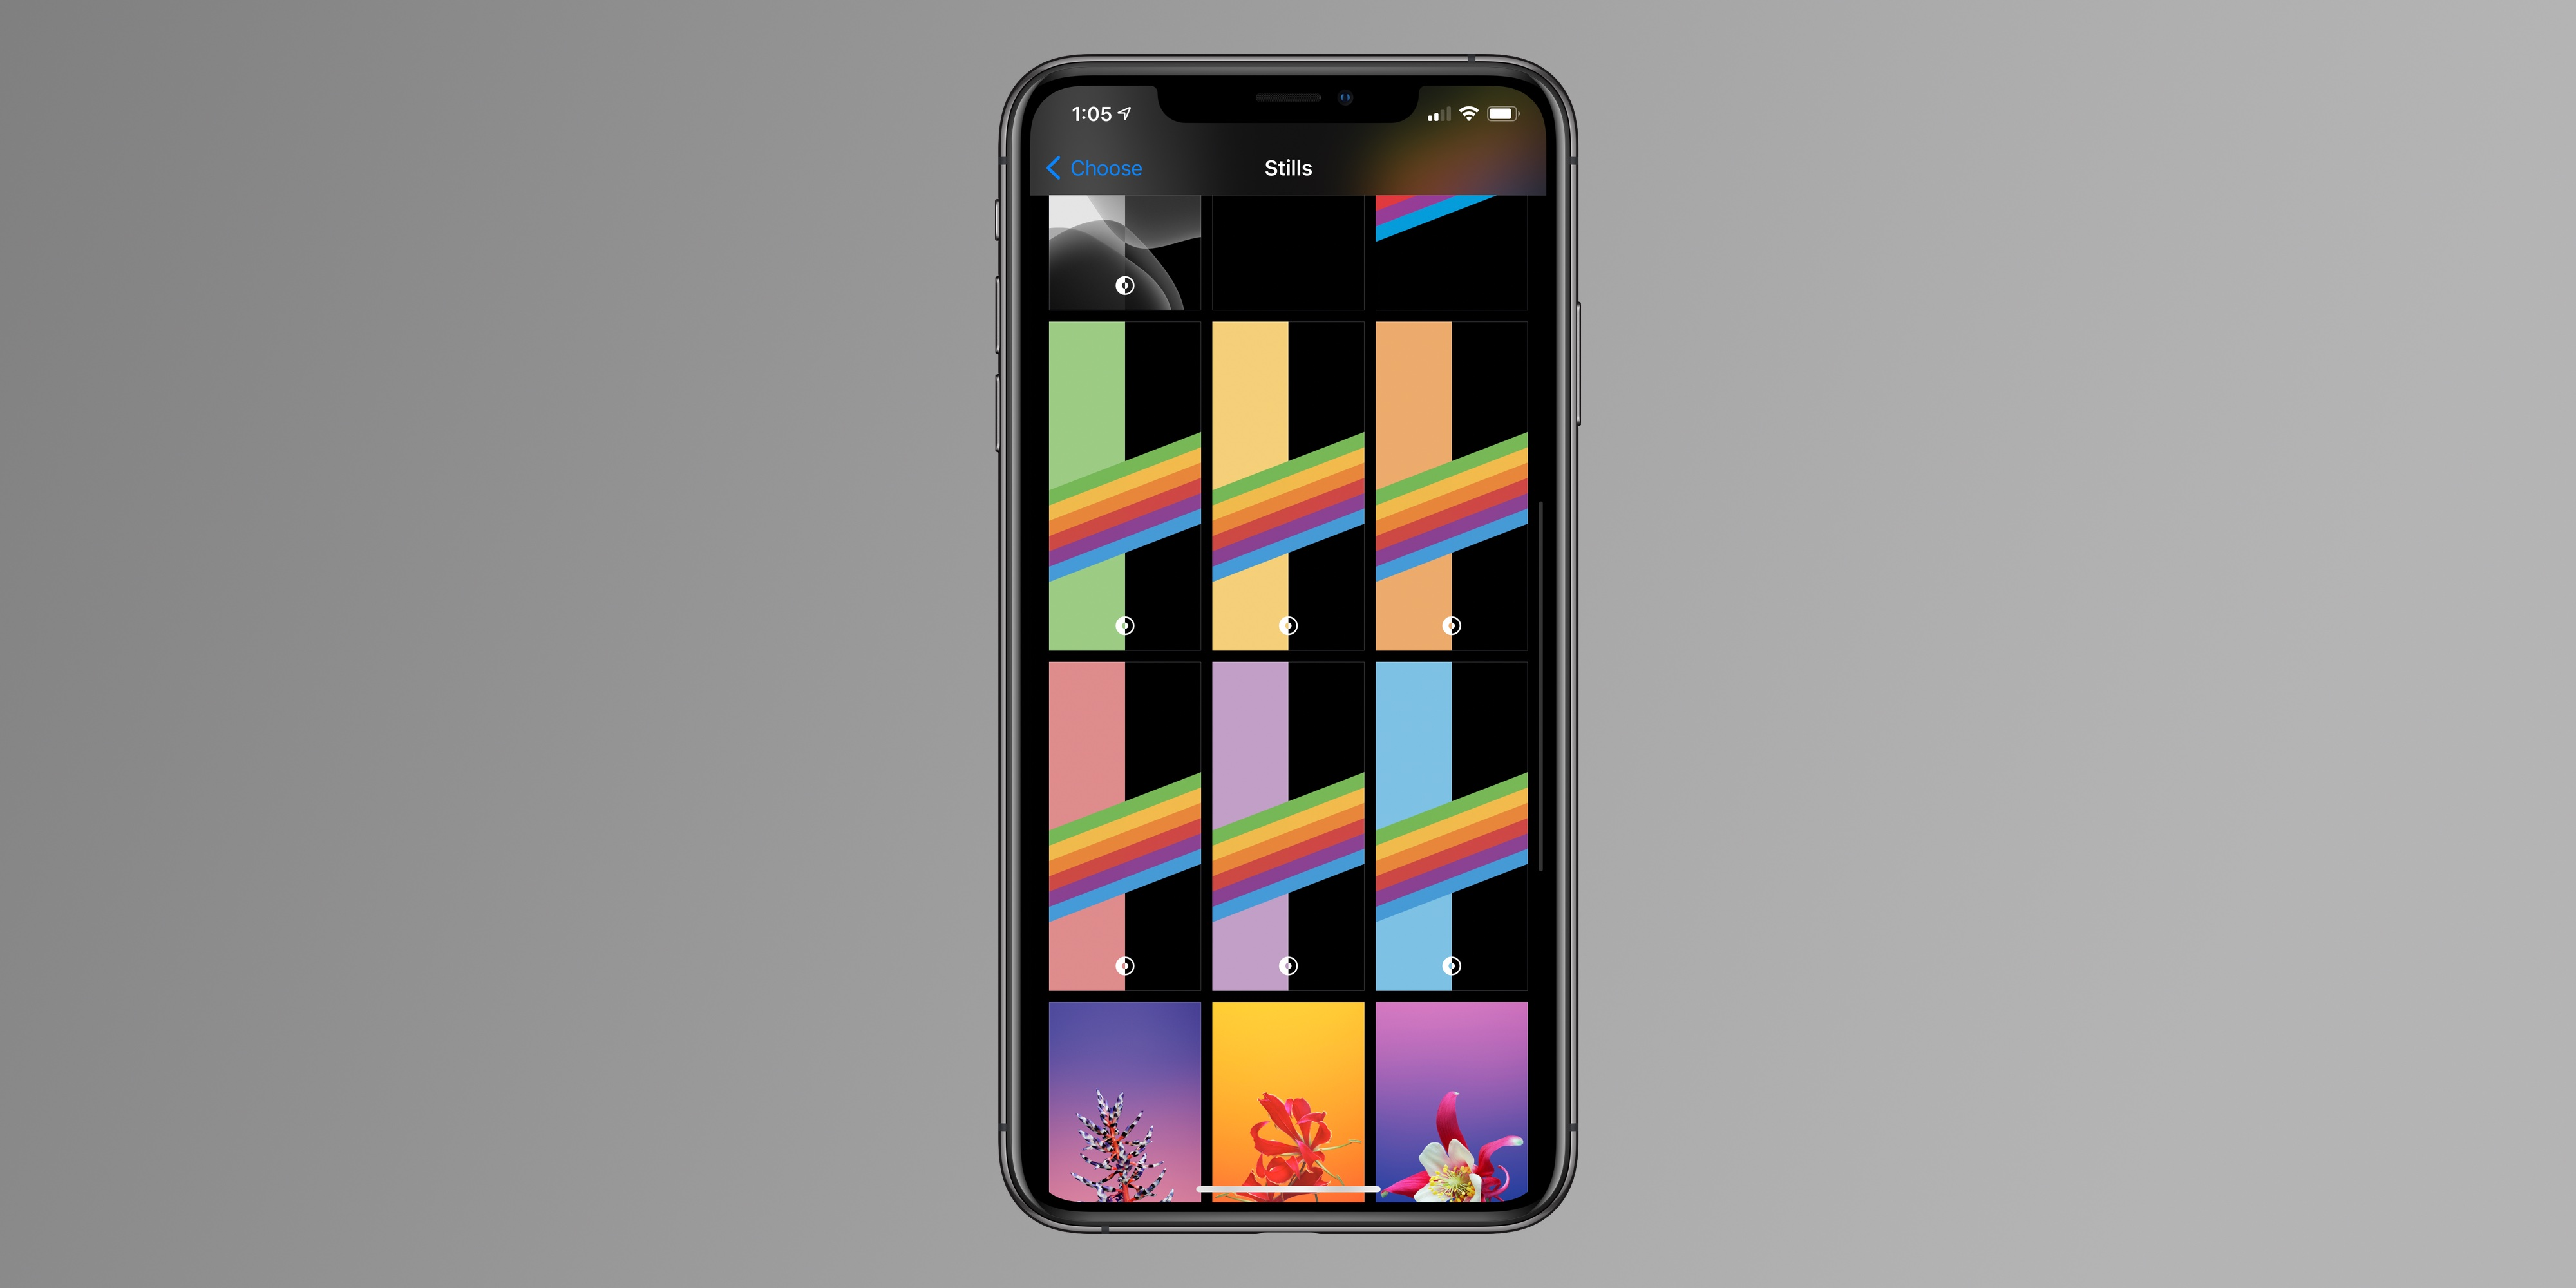 Ios 14 Beta 7 Adds New Dark Mode Wallpaper Option For Rainbow Stripe Backgrounds 9to5mac